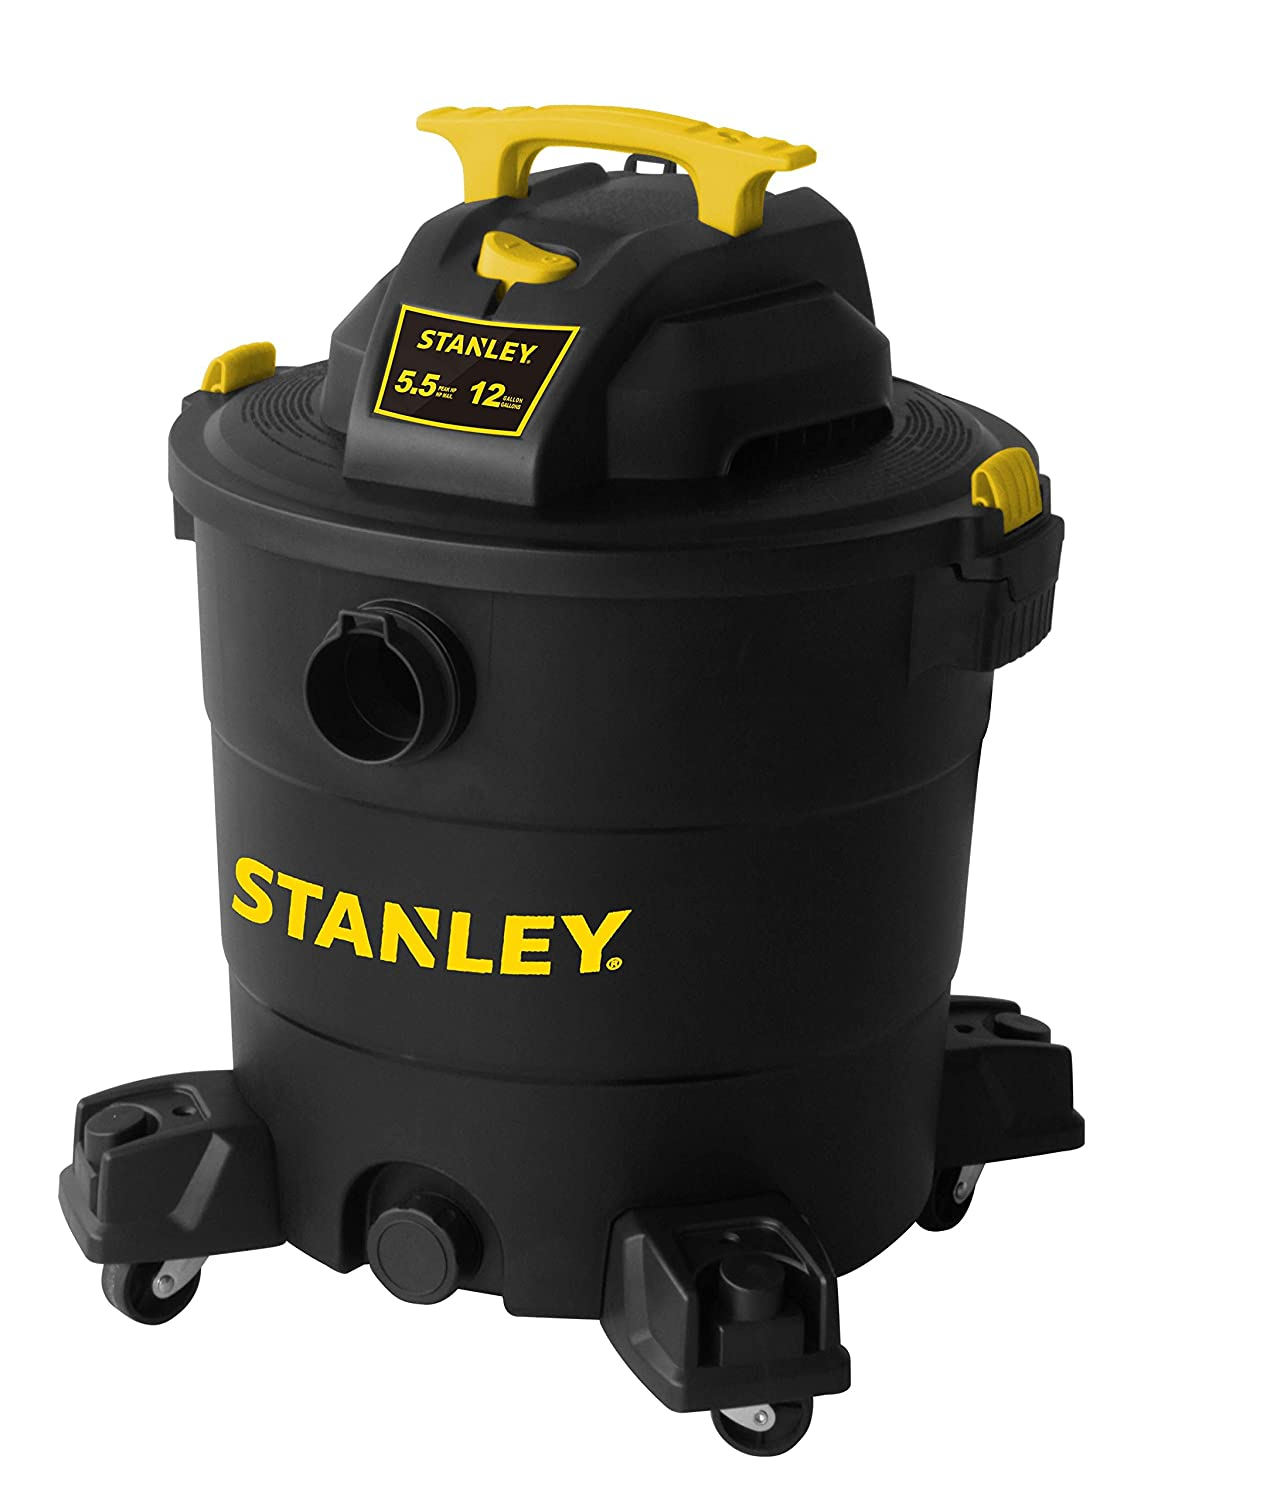 Stanley Wet/Dry Vacuum, 12 Gallon, 5.5 Horsepower